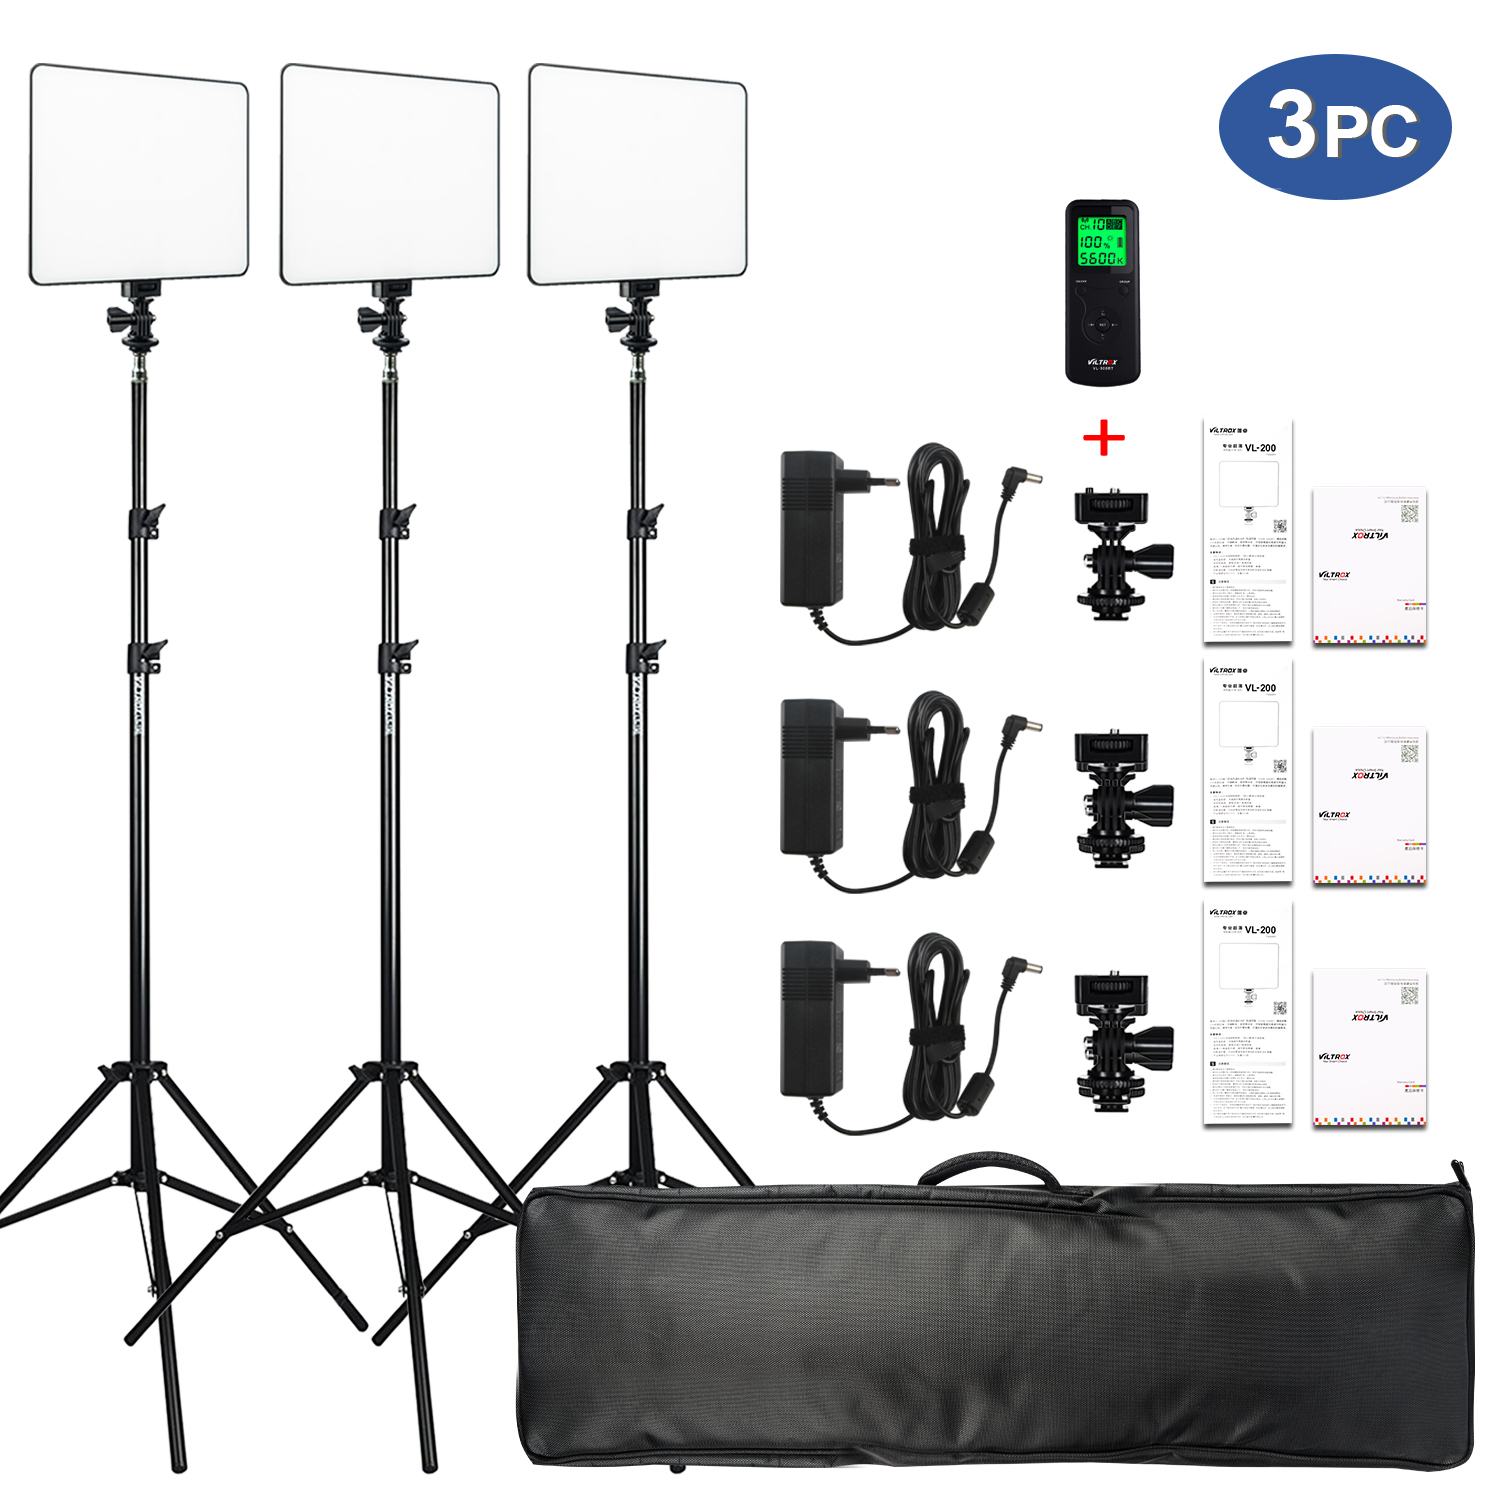 VILROX 3pcs VL-200T Bi-color Dimmable Wireless remote LED Video Light Panel Lighting Kit+75